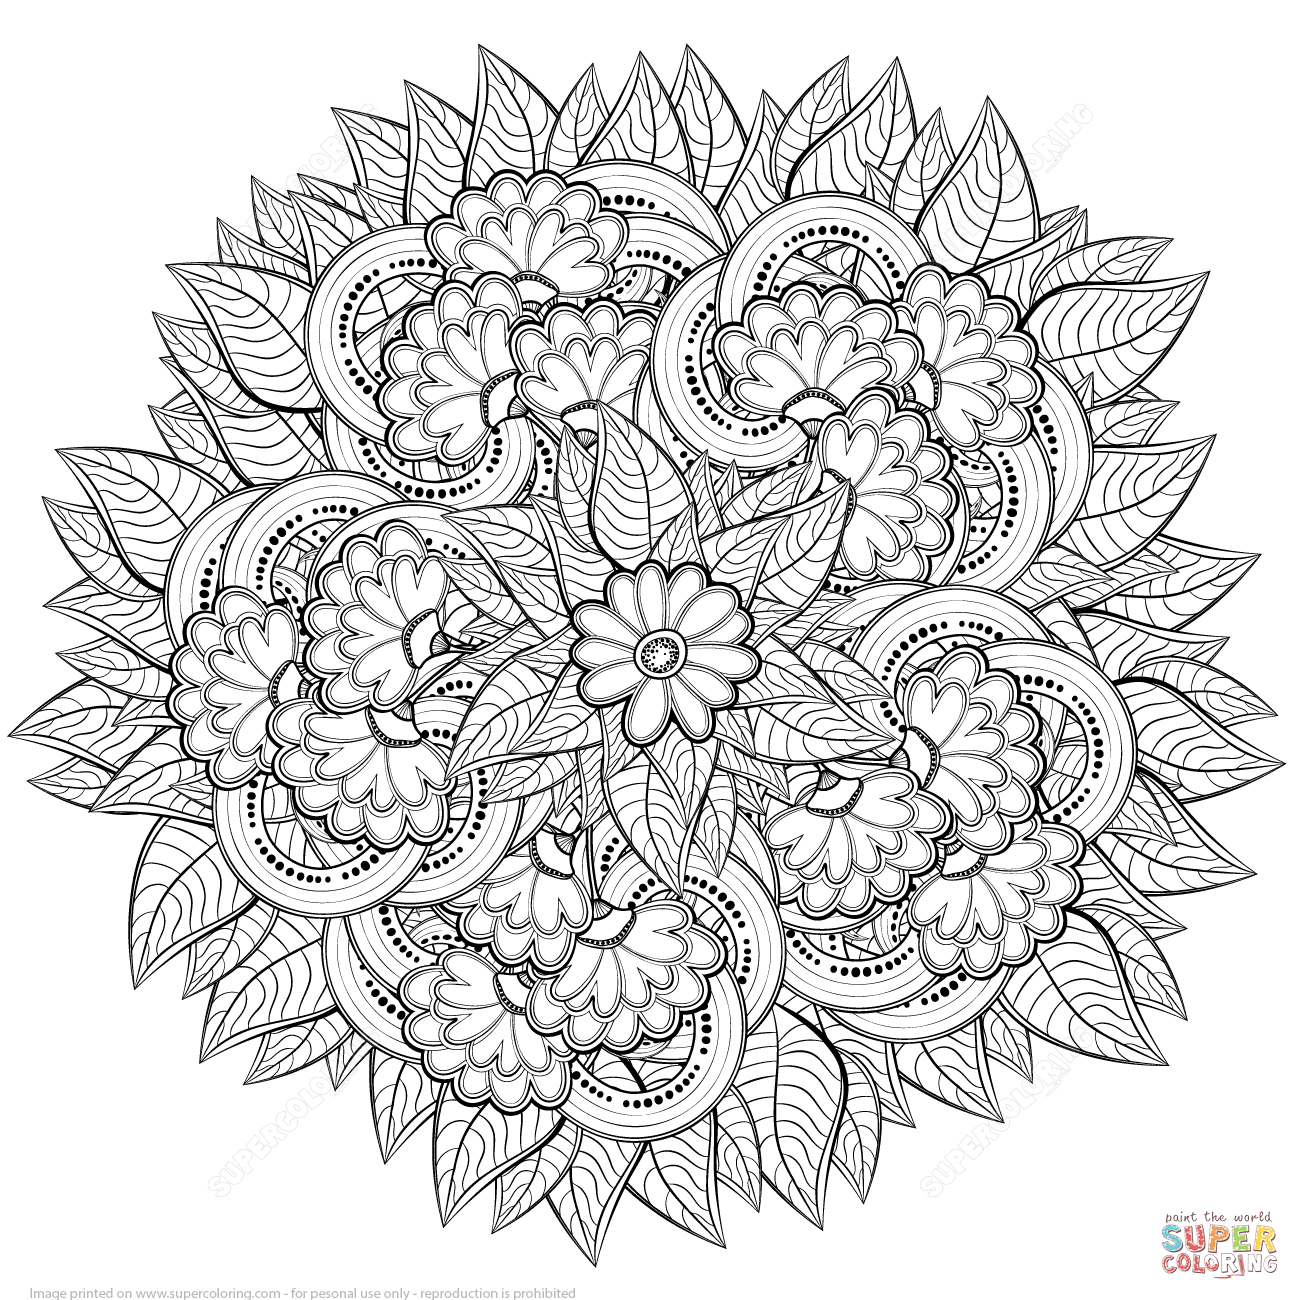 printable zentangle coloring pages zentangle to download for free zentangle kids coloring pages printable coloring pages zentangle